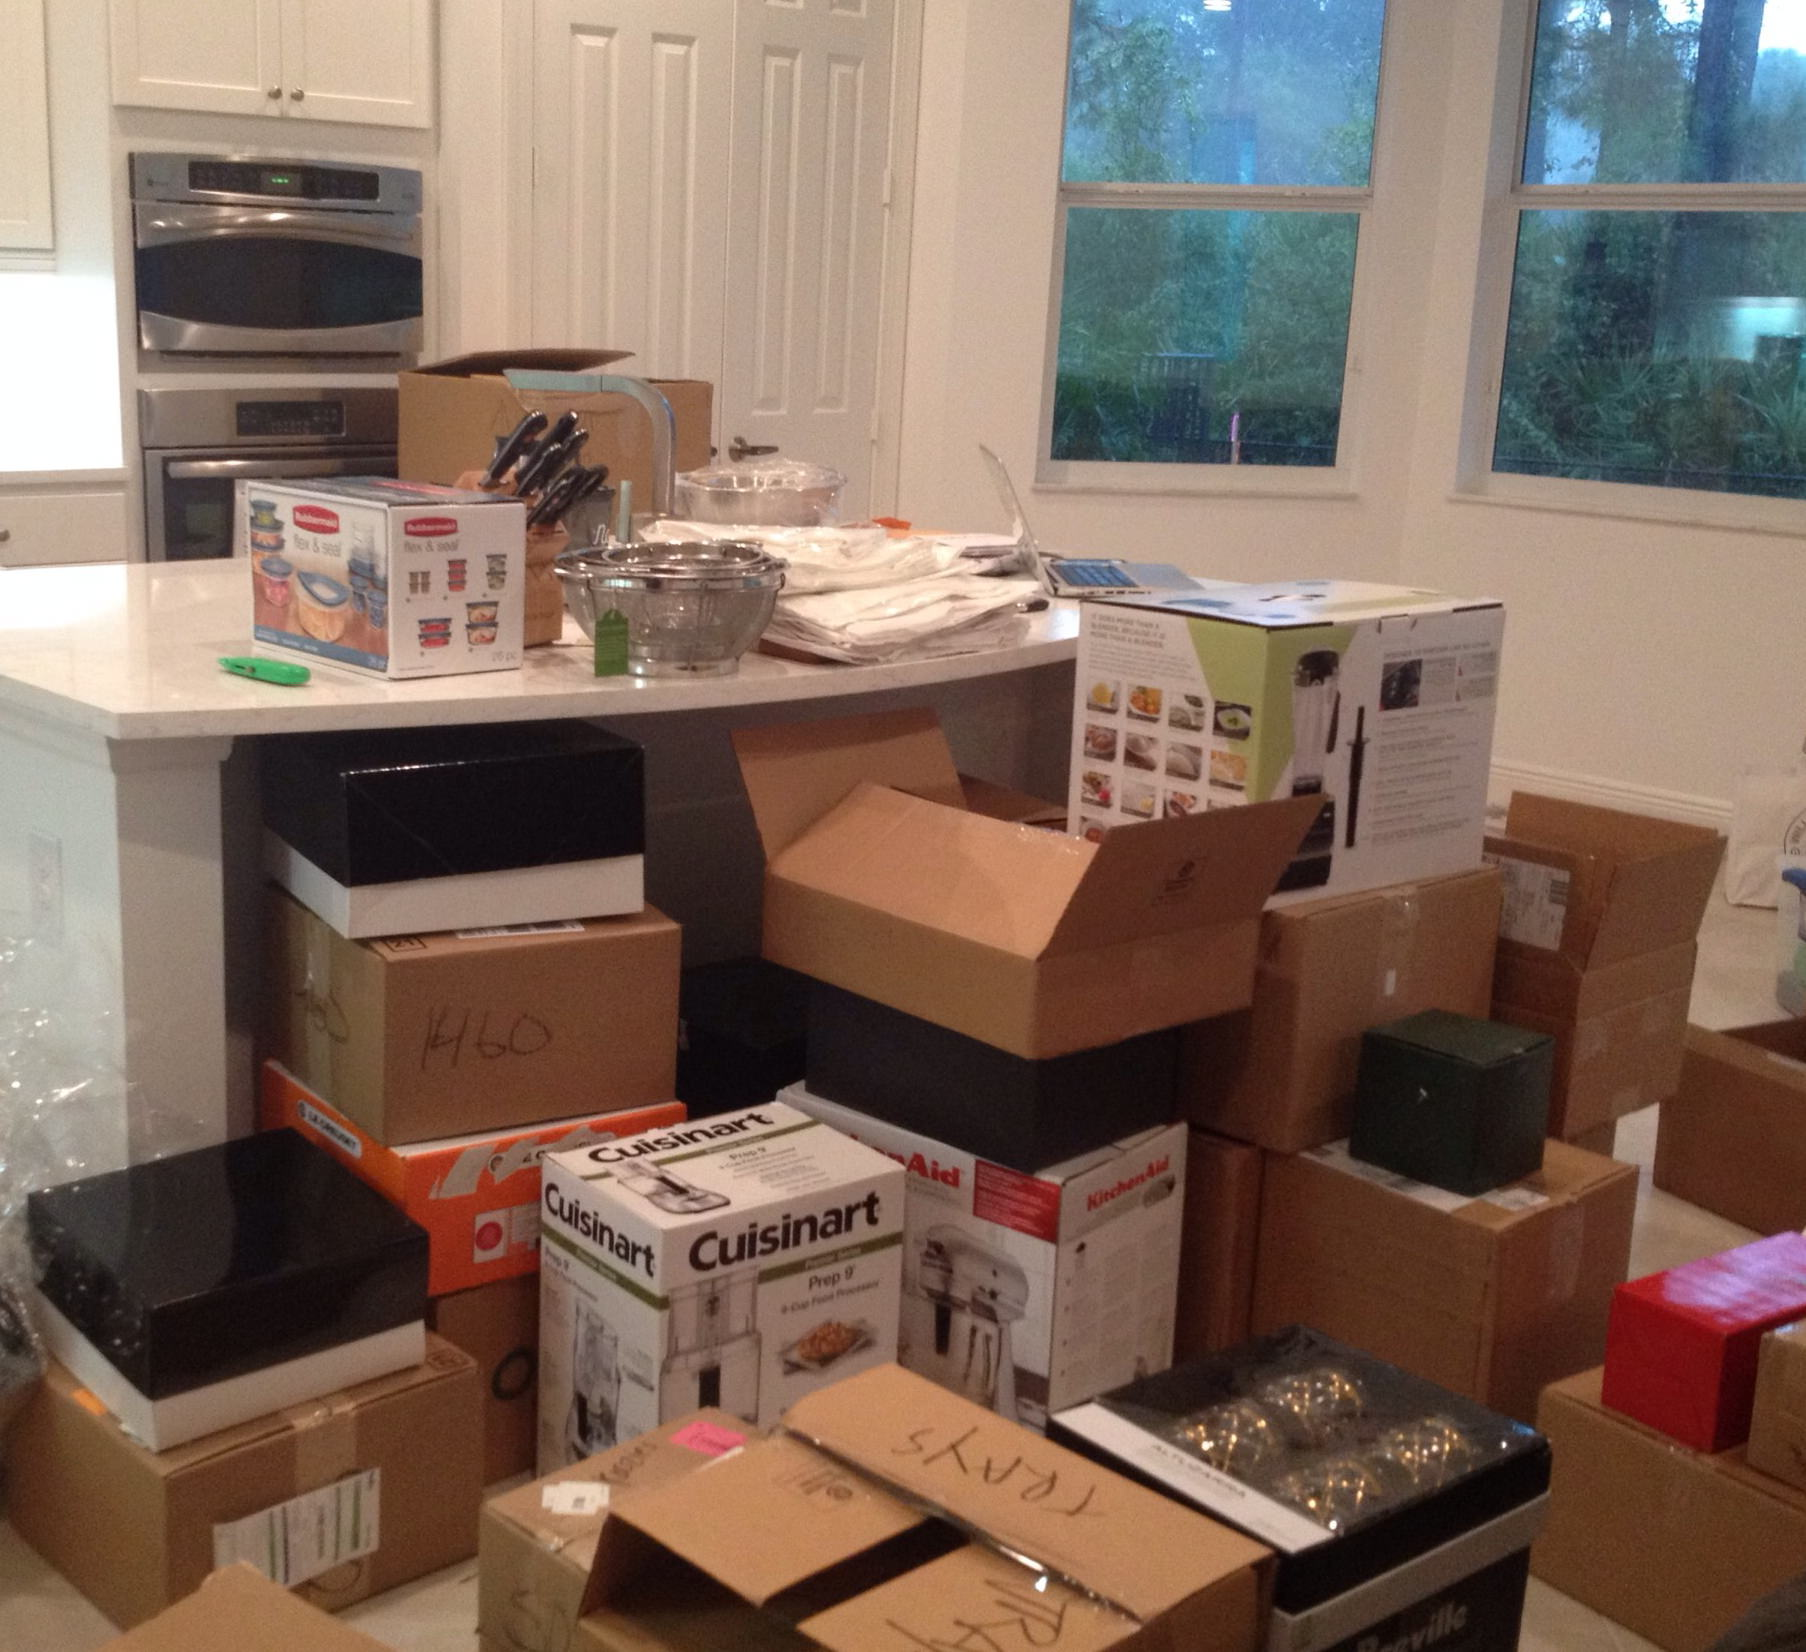 neat method, kitchen remodel, kitchen construction, kitchen chaos, boxes, packing, organizing, organized kitchen